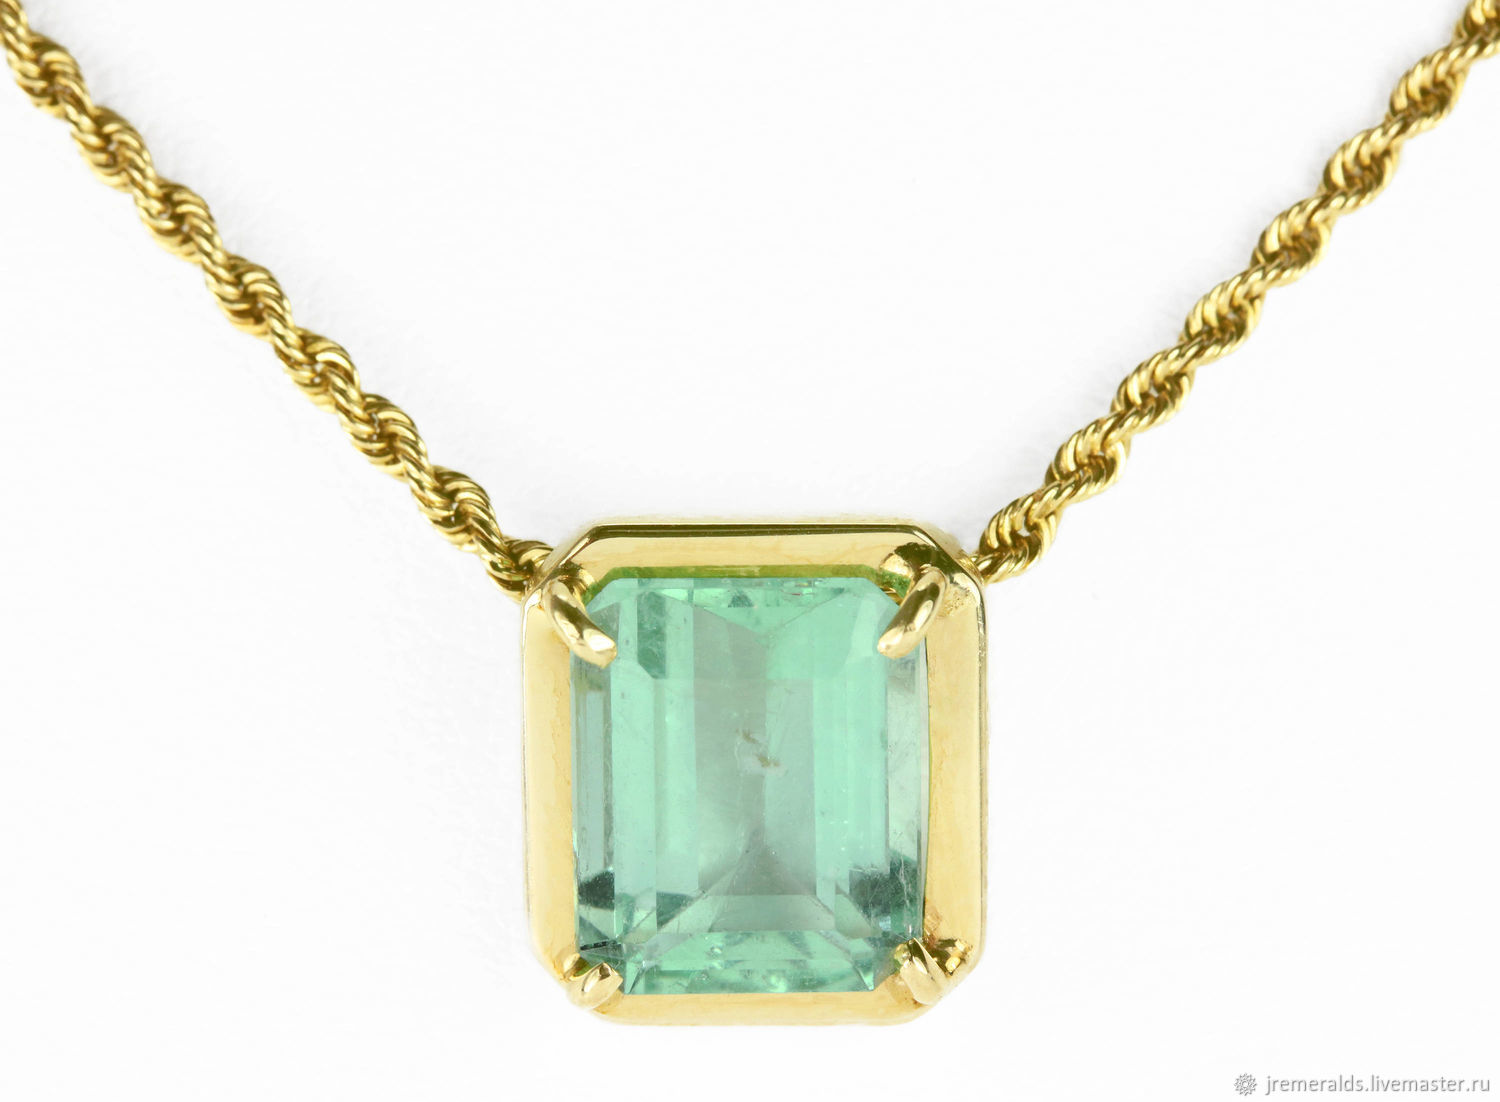 3.80ct Gold Emerald Necklace 14K,May Birthstone necklace,Natural Colom, Pendants, West Palm Beach,  Фото №1